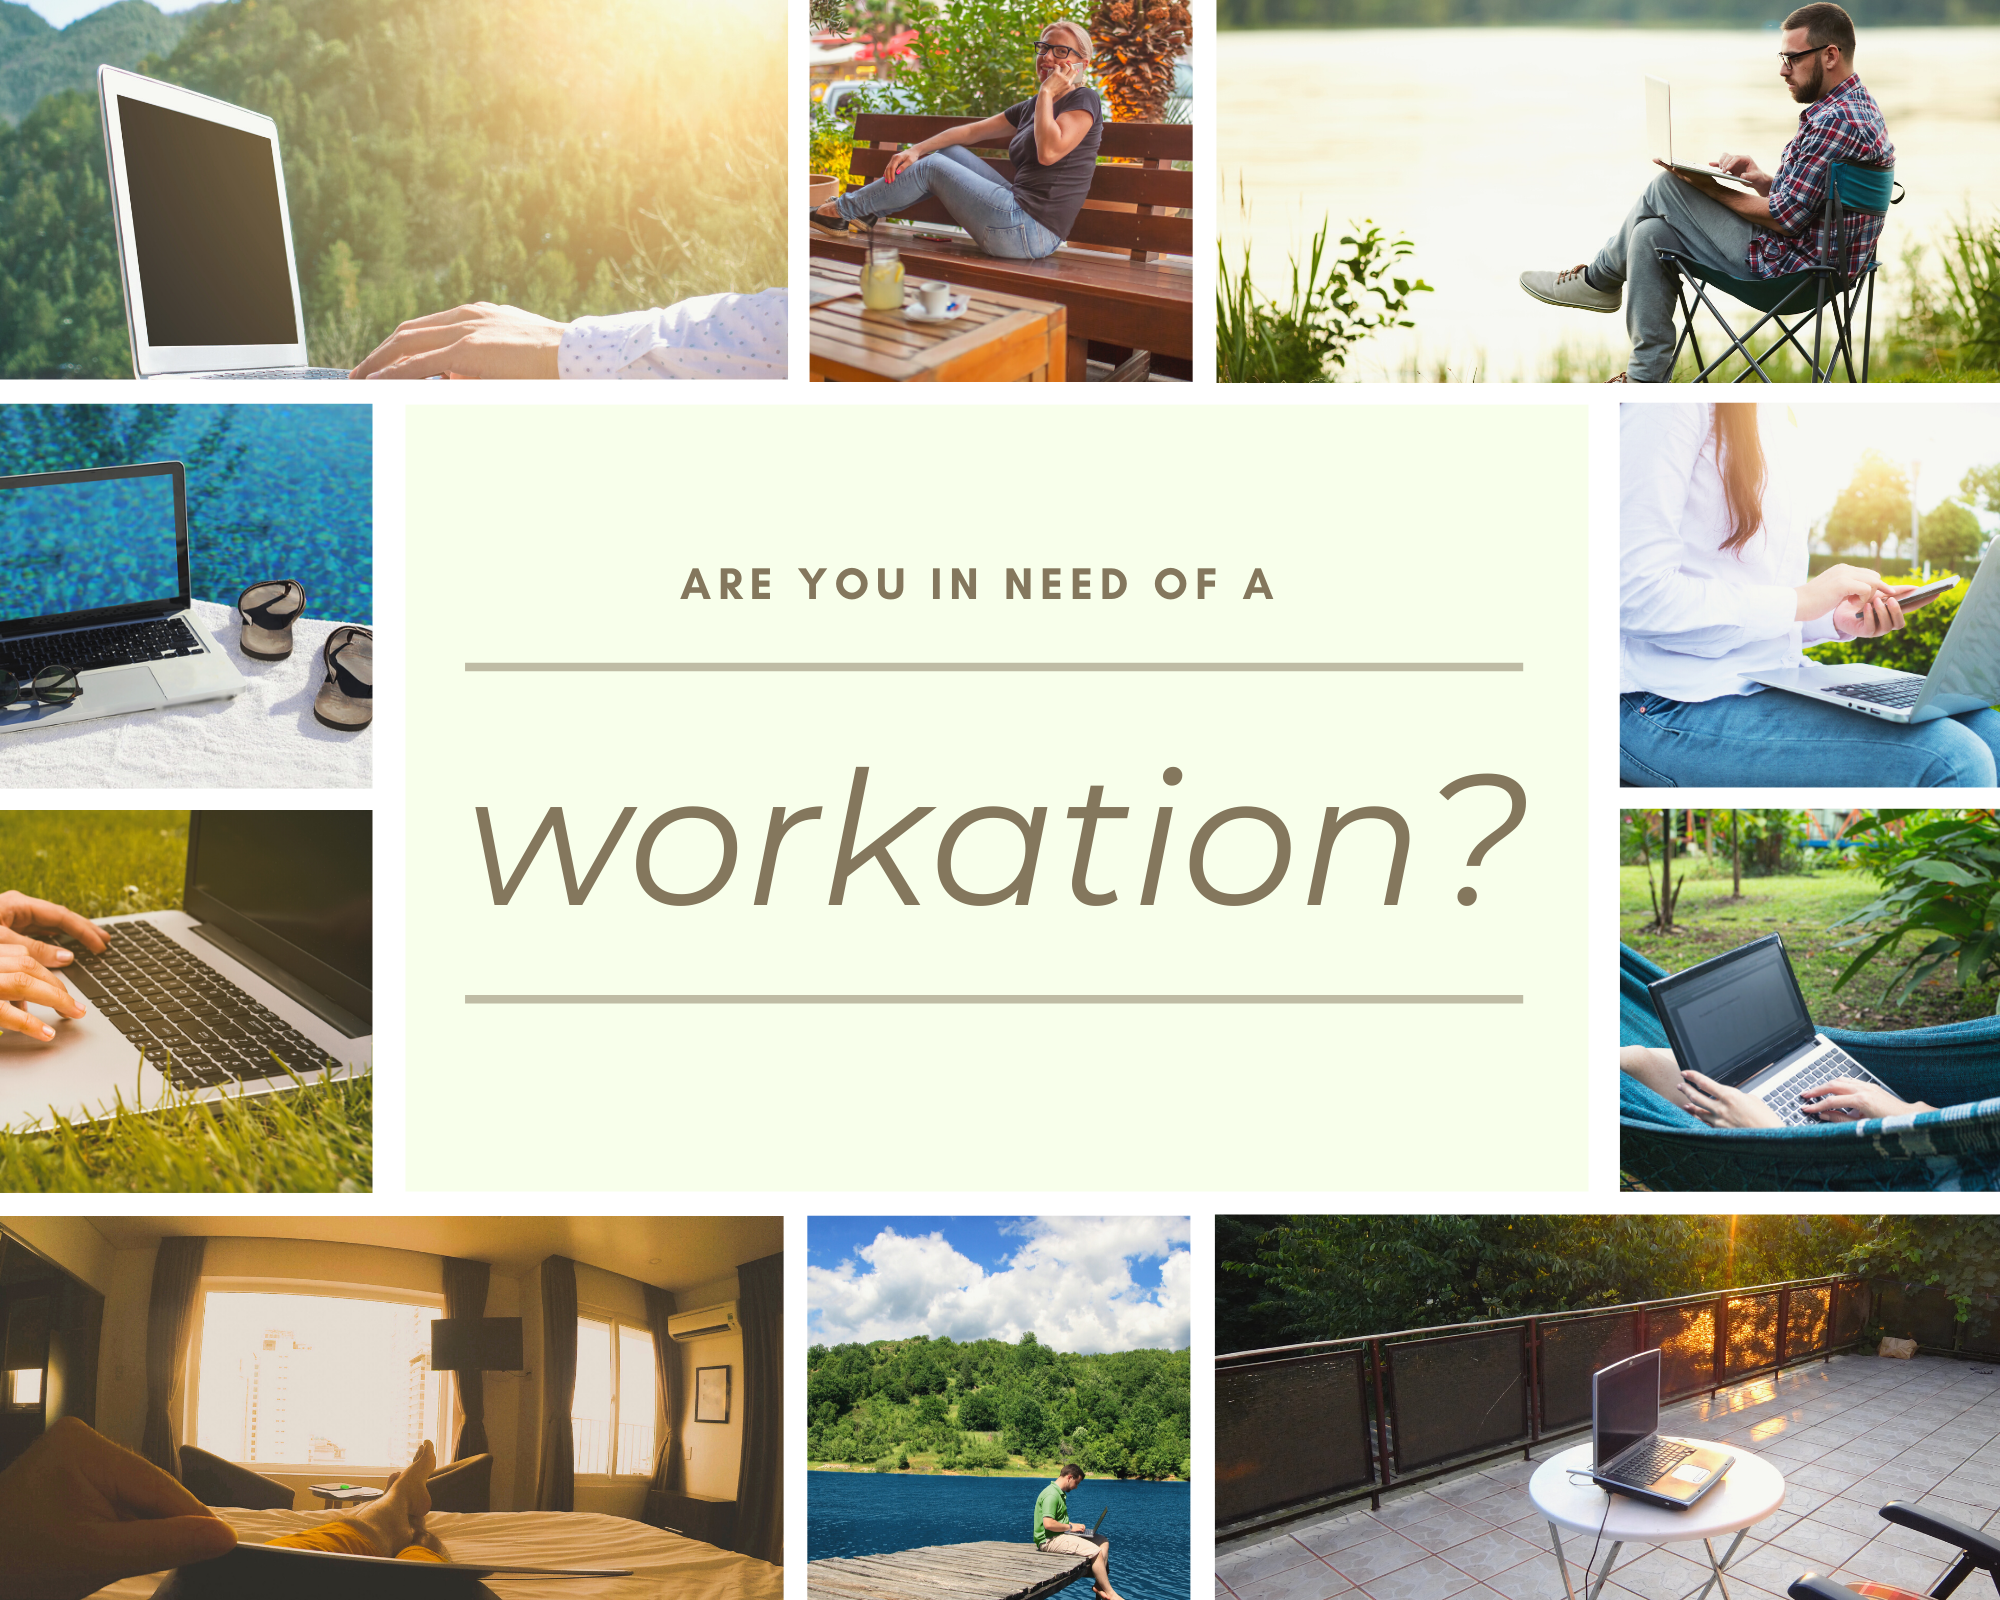 Are You In Need Of A Workation?